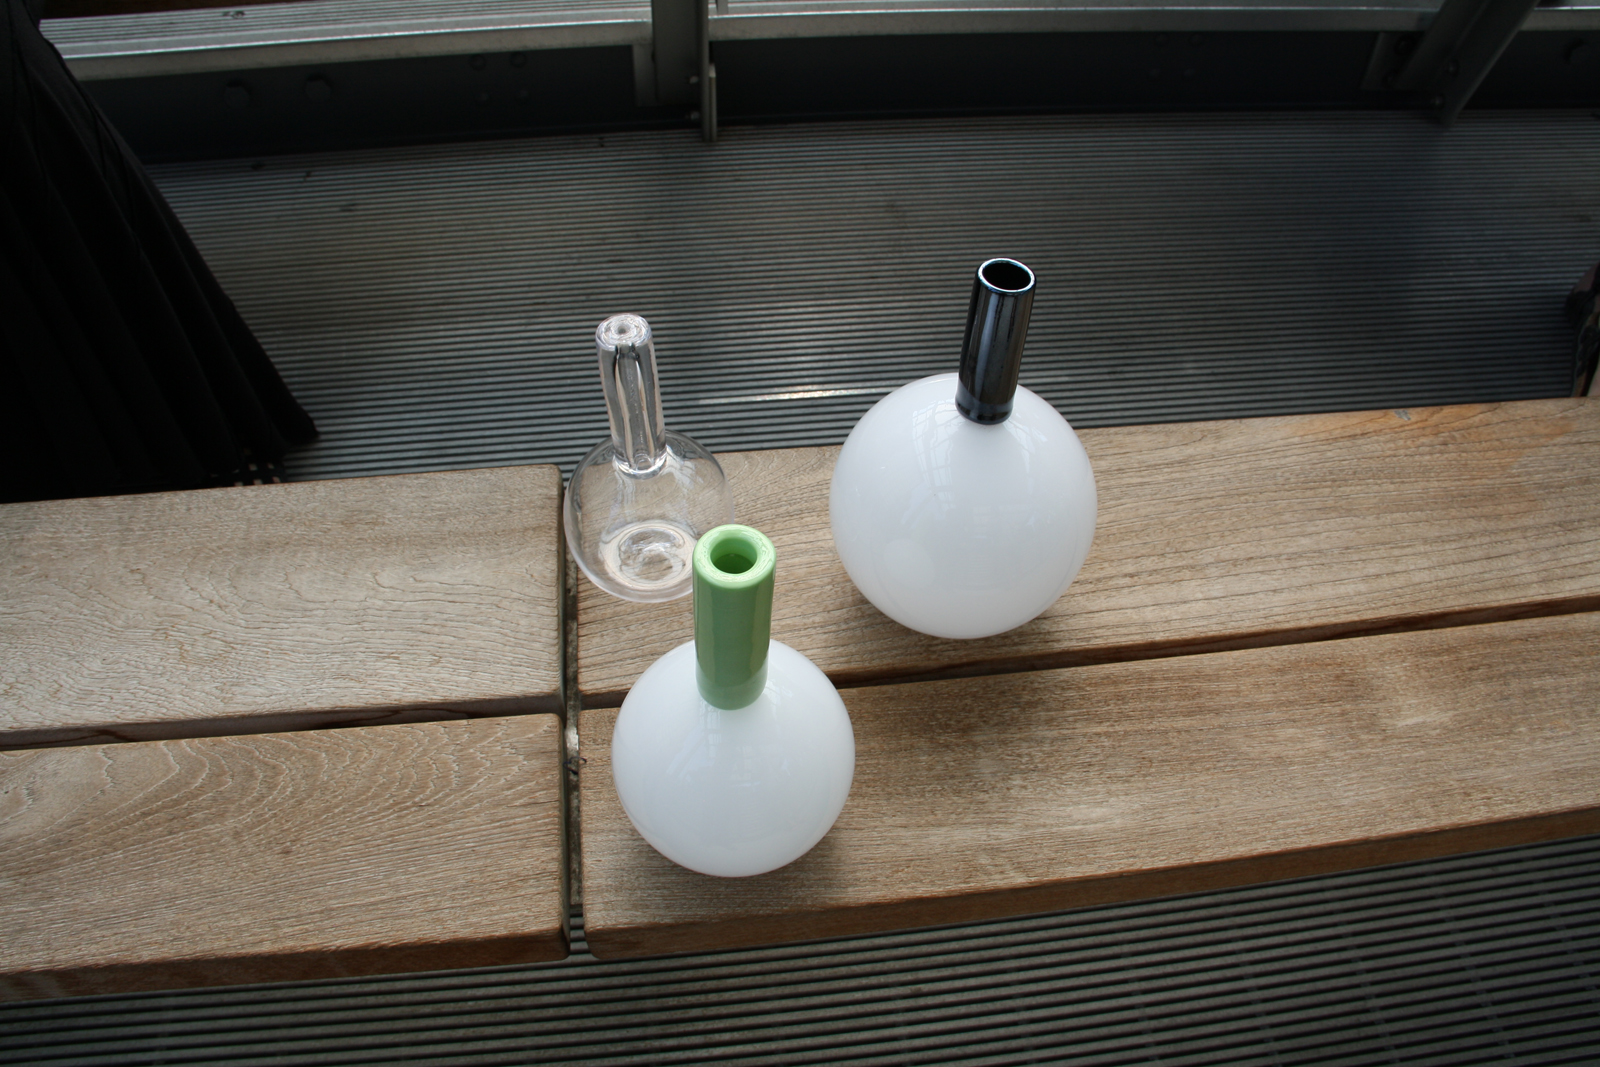 Design prototype by Marc Thorpe for GlassLab in Corning, July 2012